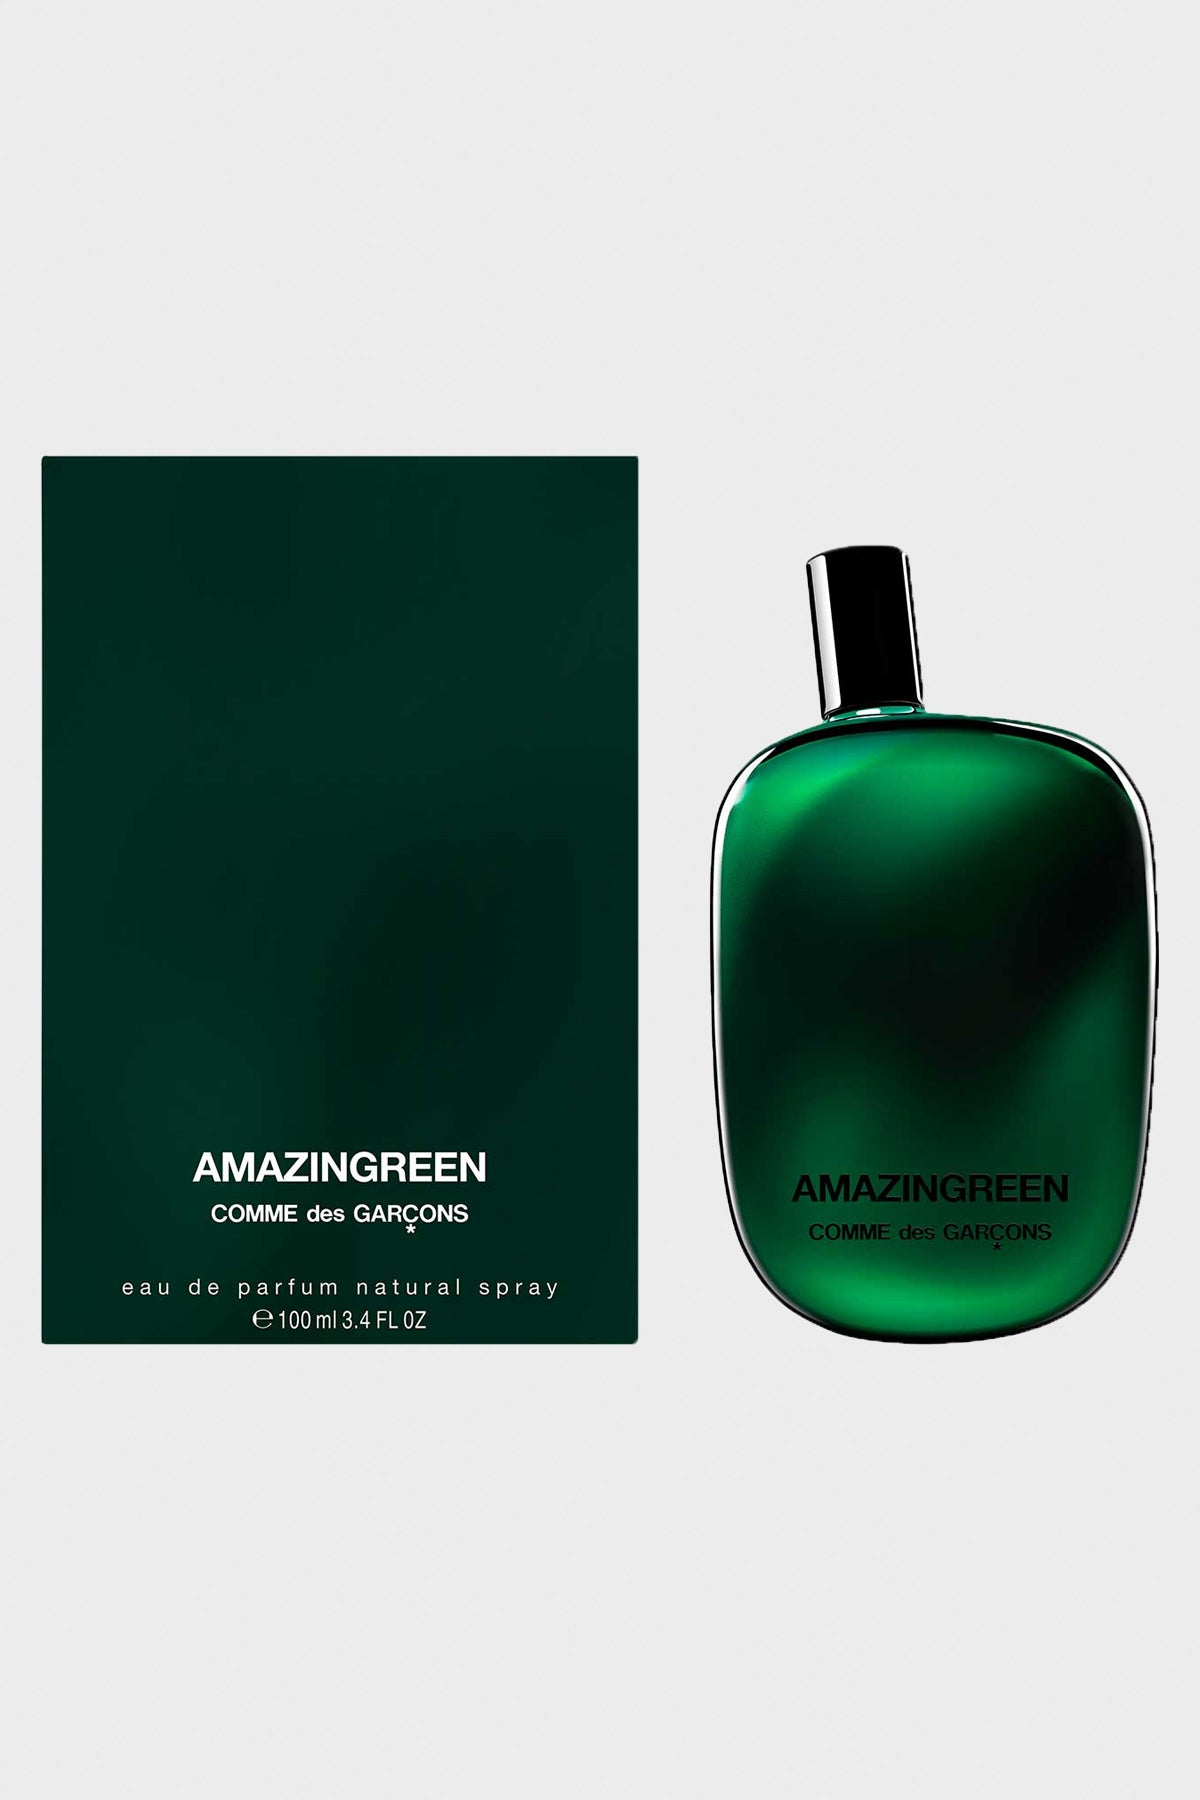 Comme des Garçons PARFUMS - Amazingreen 100ML Natural Spray - Canoe Club